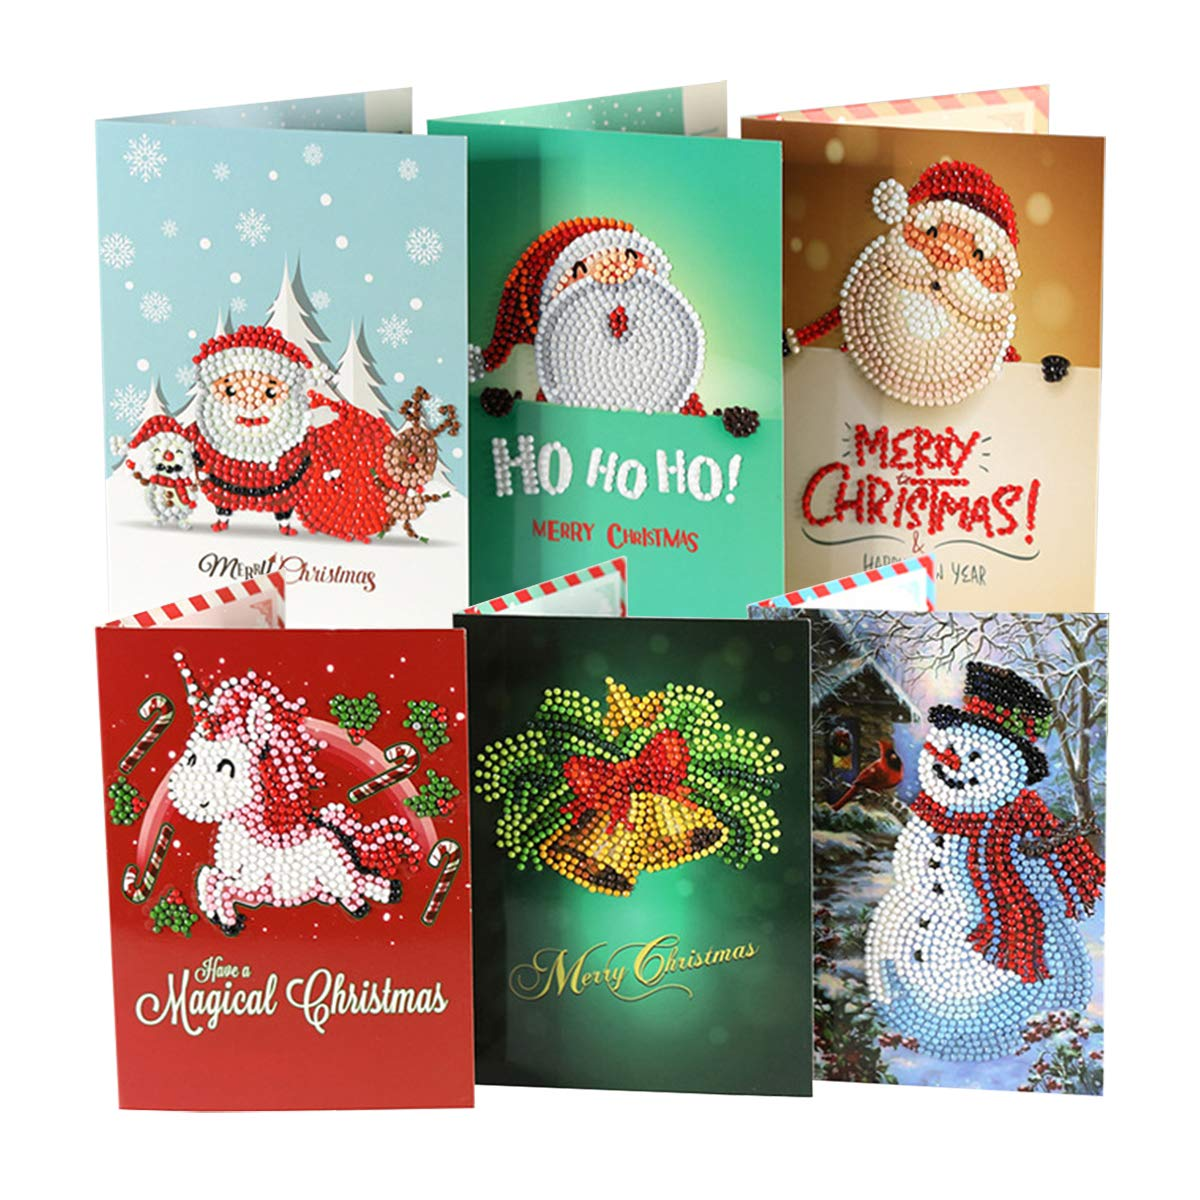 Qiaoniuniu Christmas Santa Cards Diamond Painting For Kids 5d Rhinestone Painting By Number Kits Mosaic Making 8 Packages Arts Crafts Greeting Cards